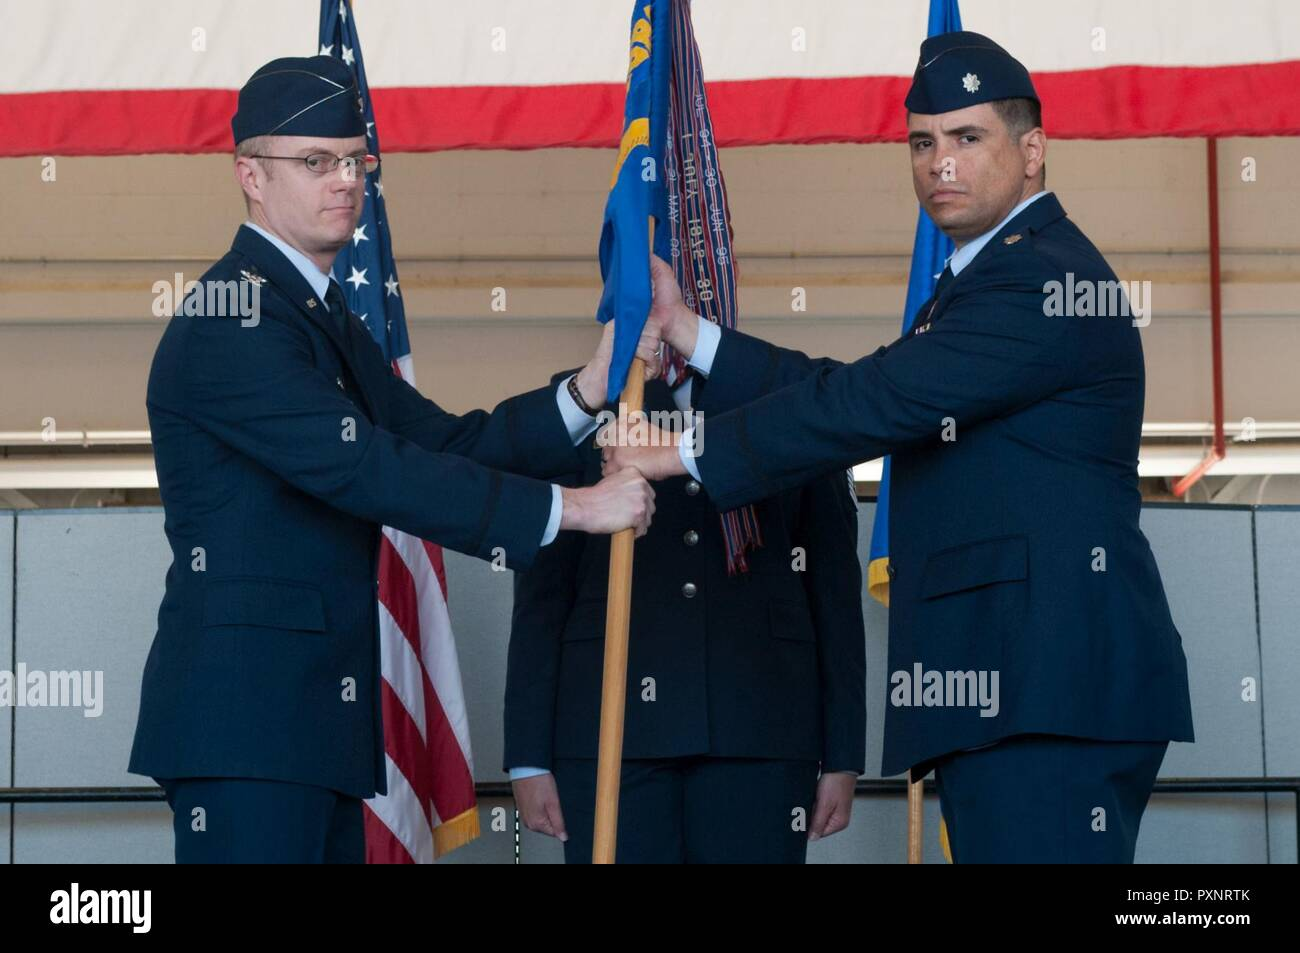 Jacob J Holmgren 548th Intelligence Surveillance And Reconnaissance Group Commander Passes The Guidon To Lt Col Luis Adames 9th